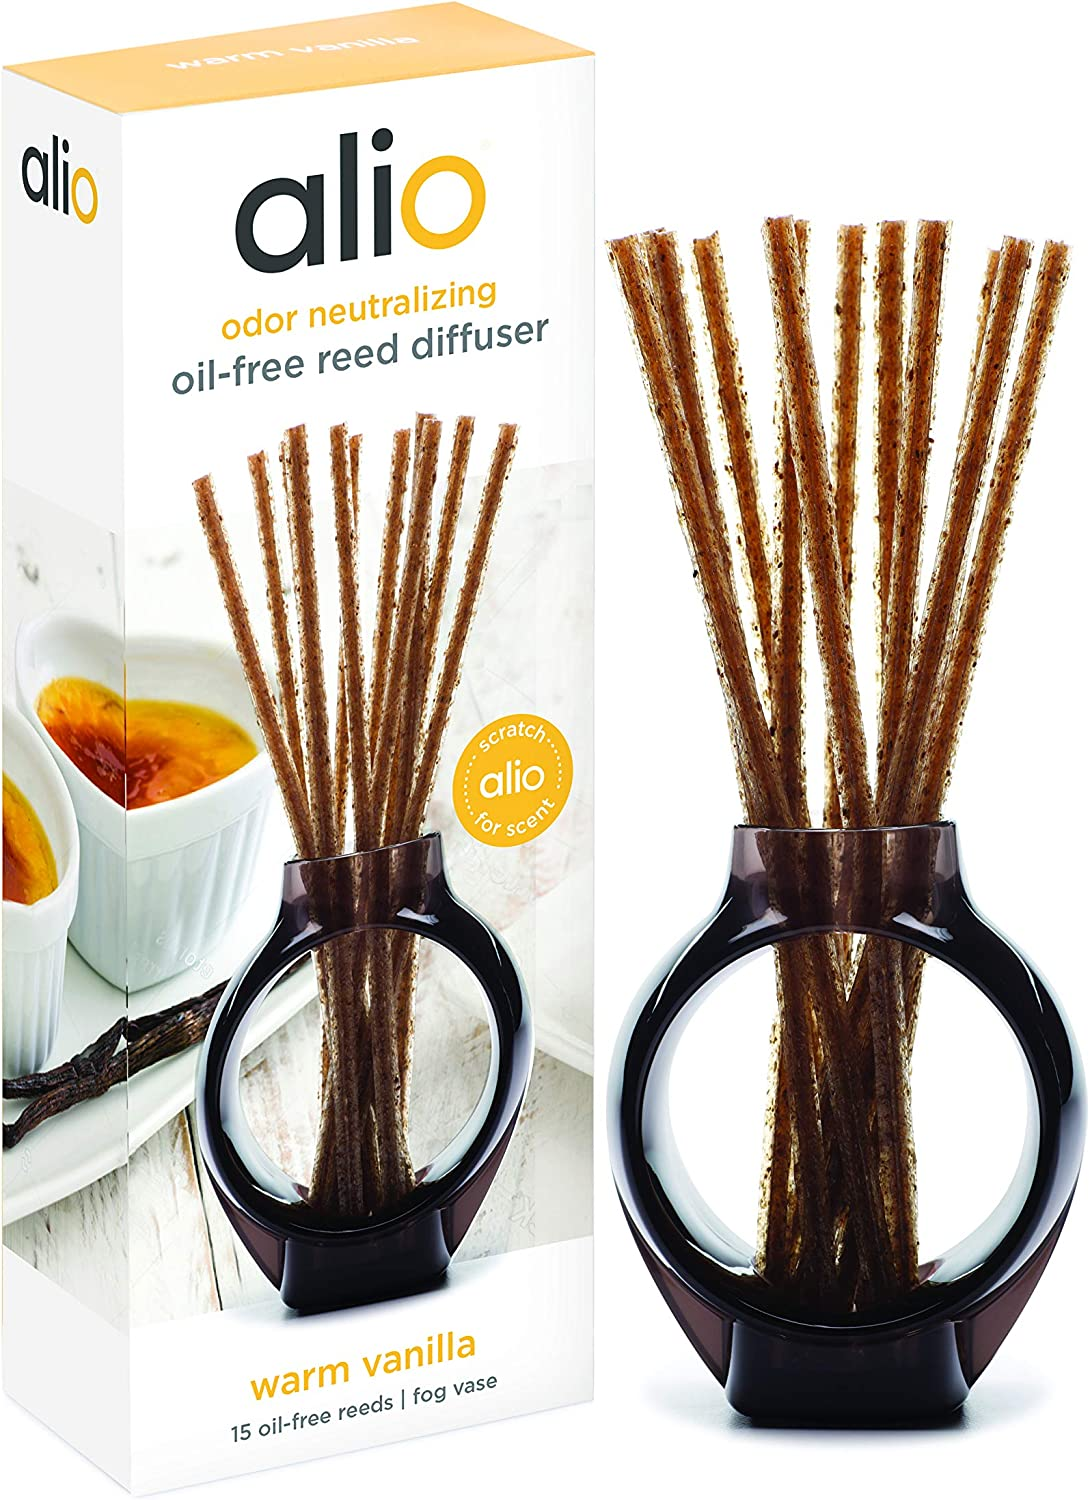 ALIO Oil-Free Reed Diffuser – Warm Vanilla – Odor Neutralizing with Subtle Scent, Pet and Eco Friendly – Set of 15 Oil-Free Reeds and Signature Vase – No Oils, Sprays, Plug-Ins, or Flames Required